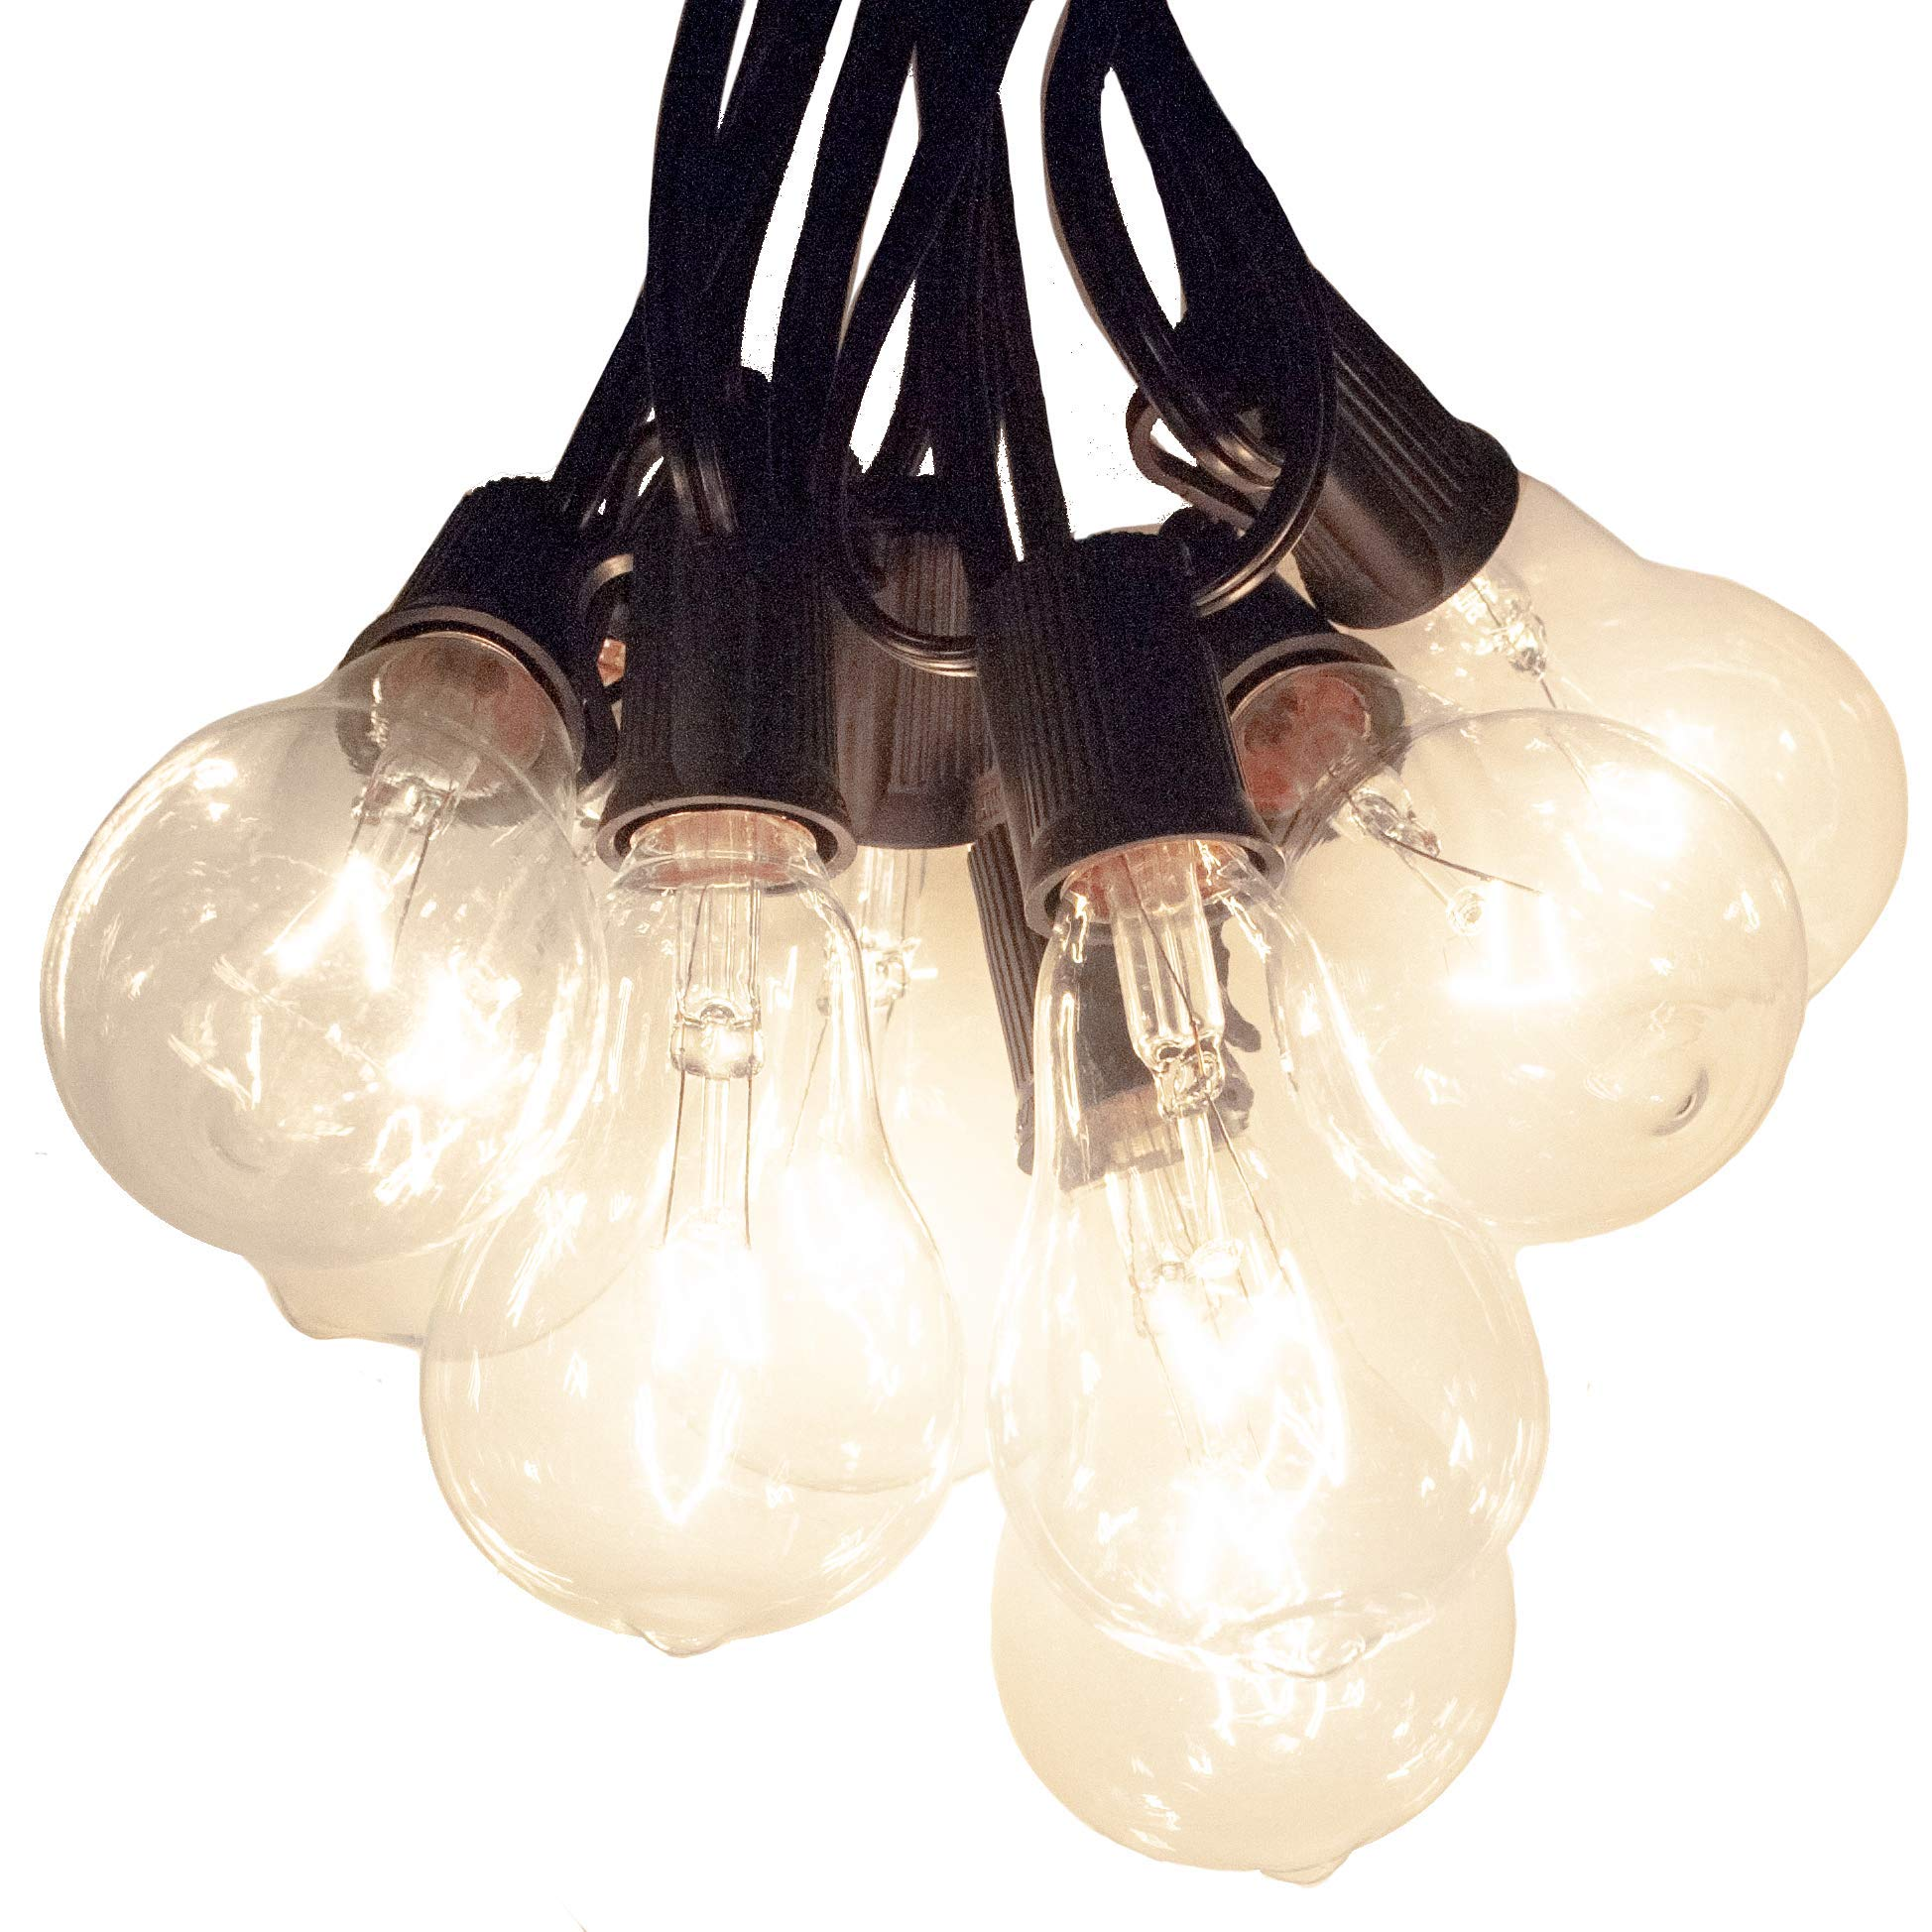 50 Foot Patio String Lights with PS50 Clear Bulbs and Black Cord